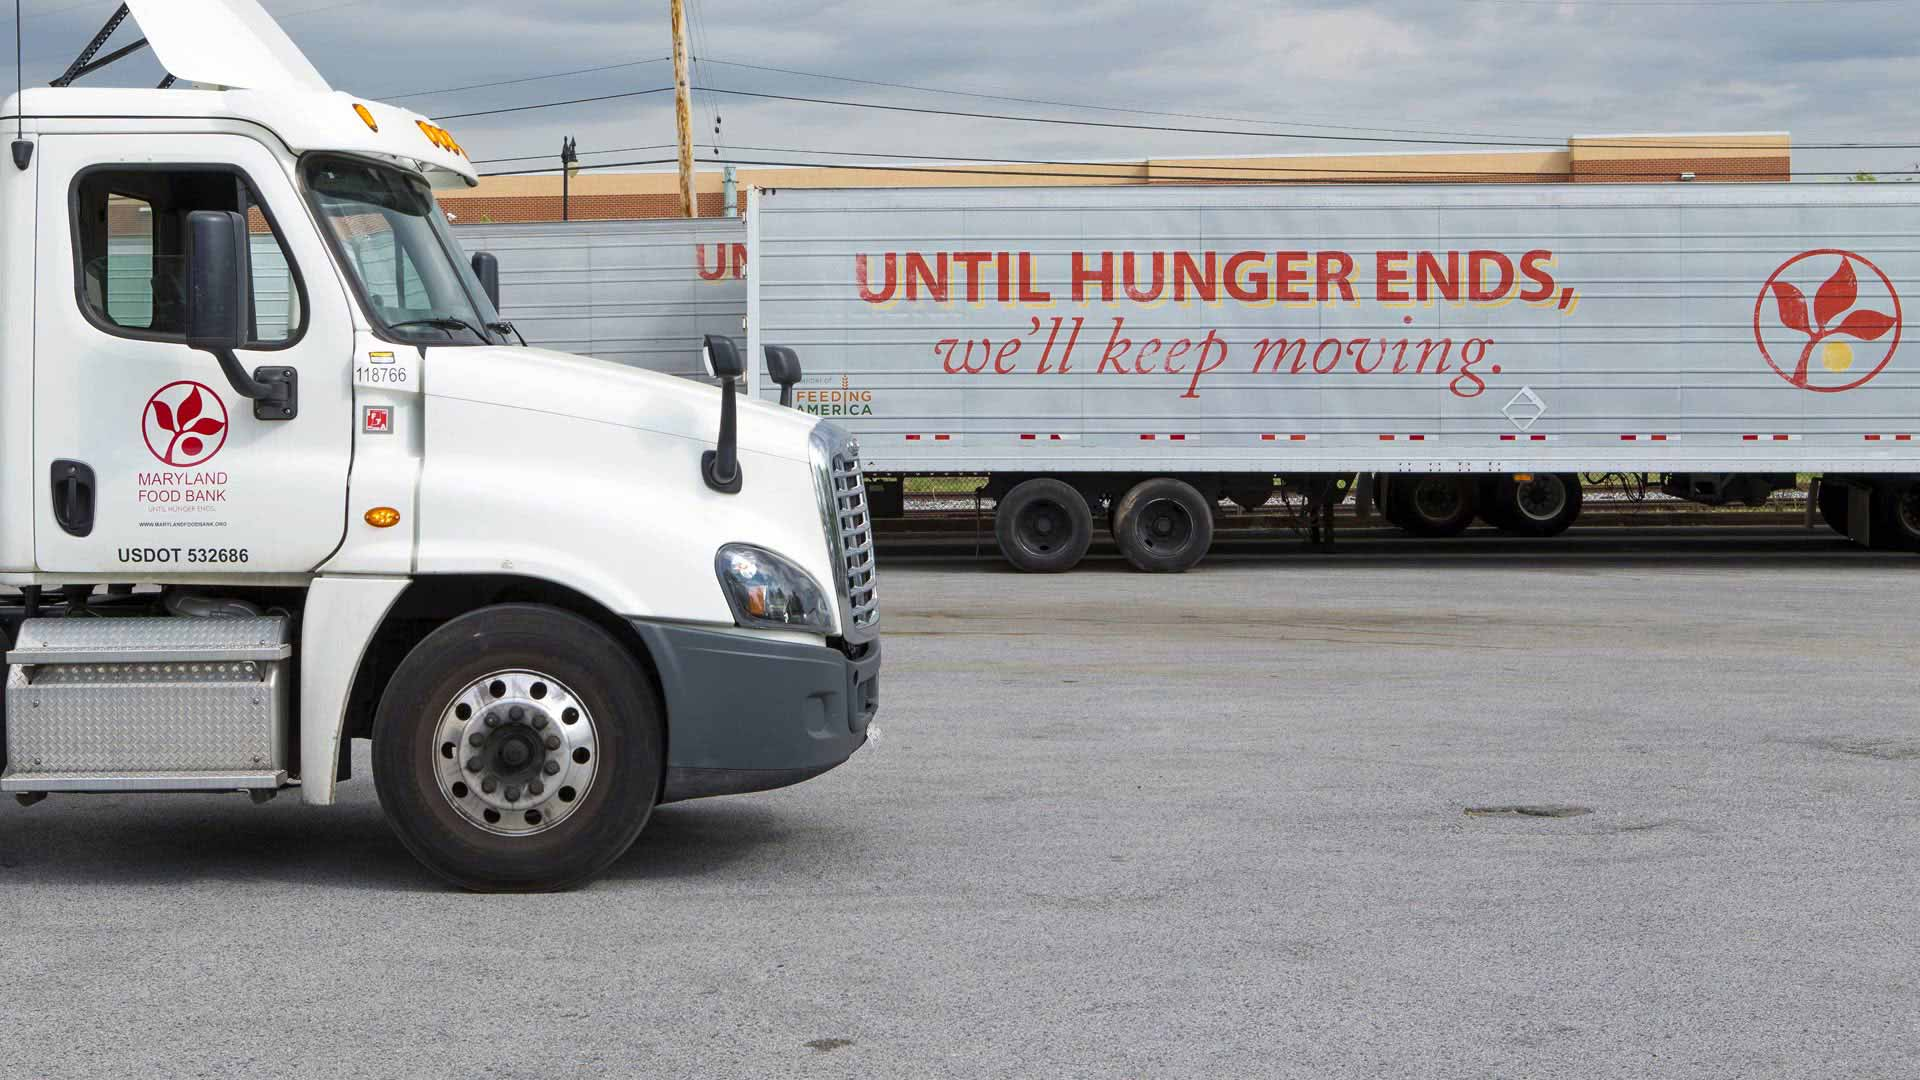 Maryland Food Bank delivery trucks